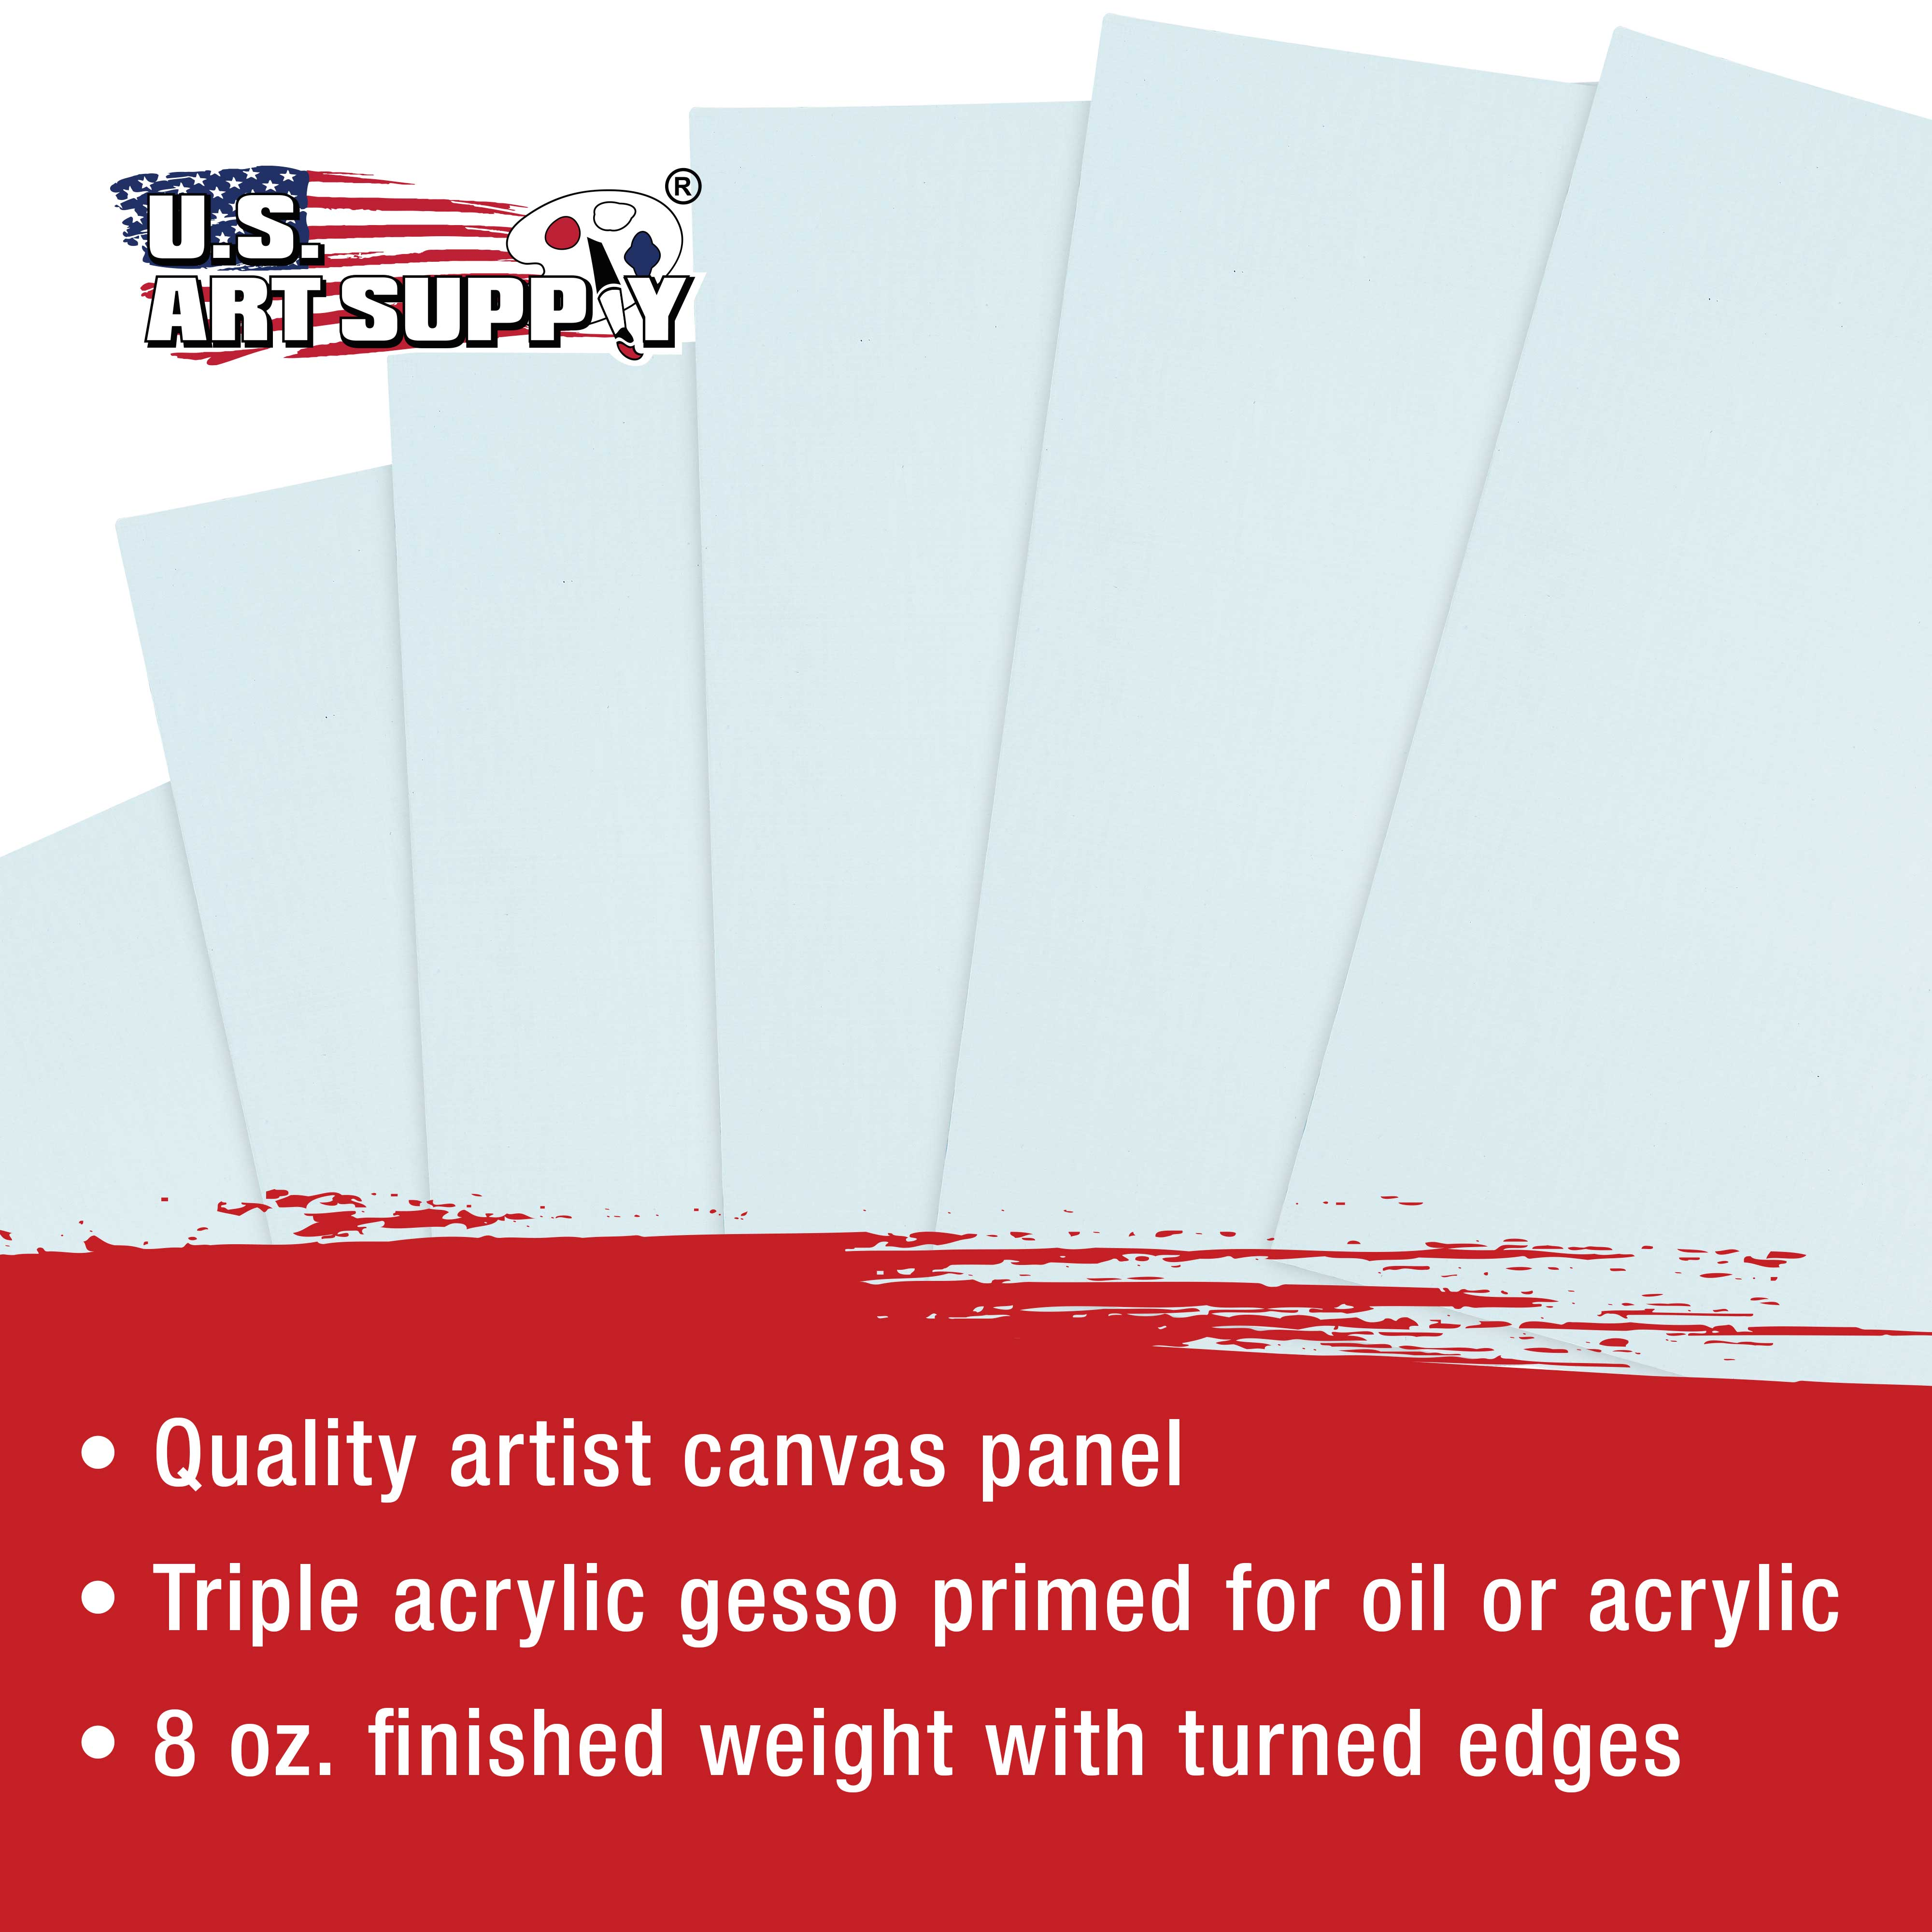 1 Full Case of 12 Single Canvas Board Panels US Art Supply 4 X 6 inch Professional Artist Quality Acid Free Canvas Panel Boards for Painting 12-Pack